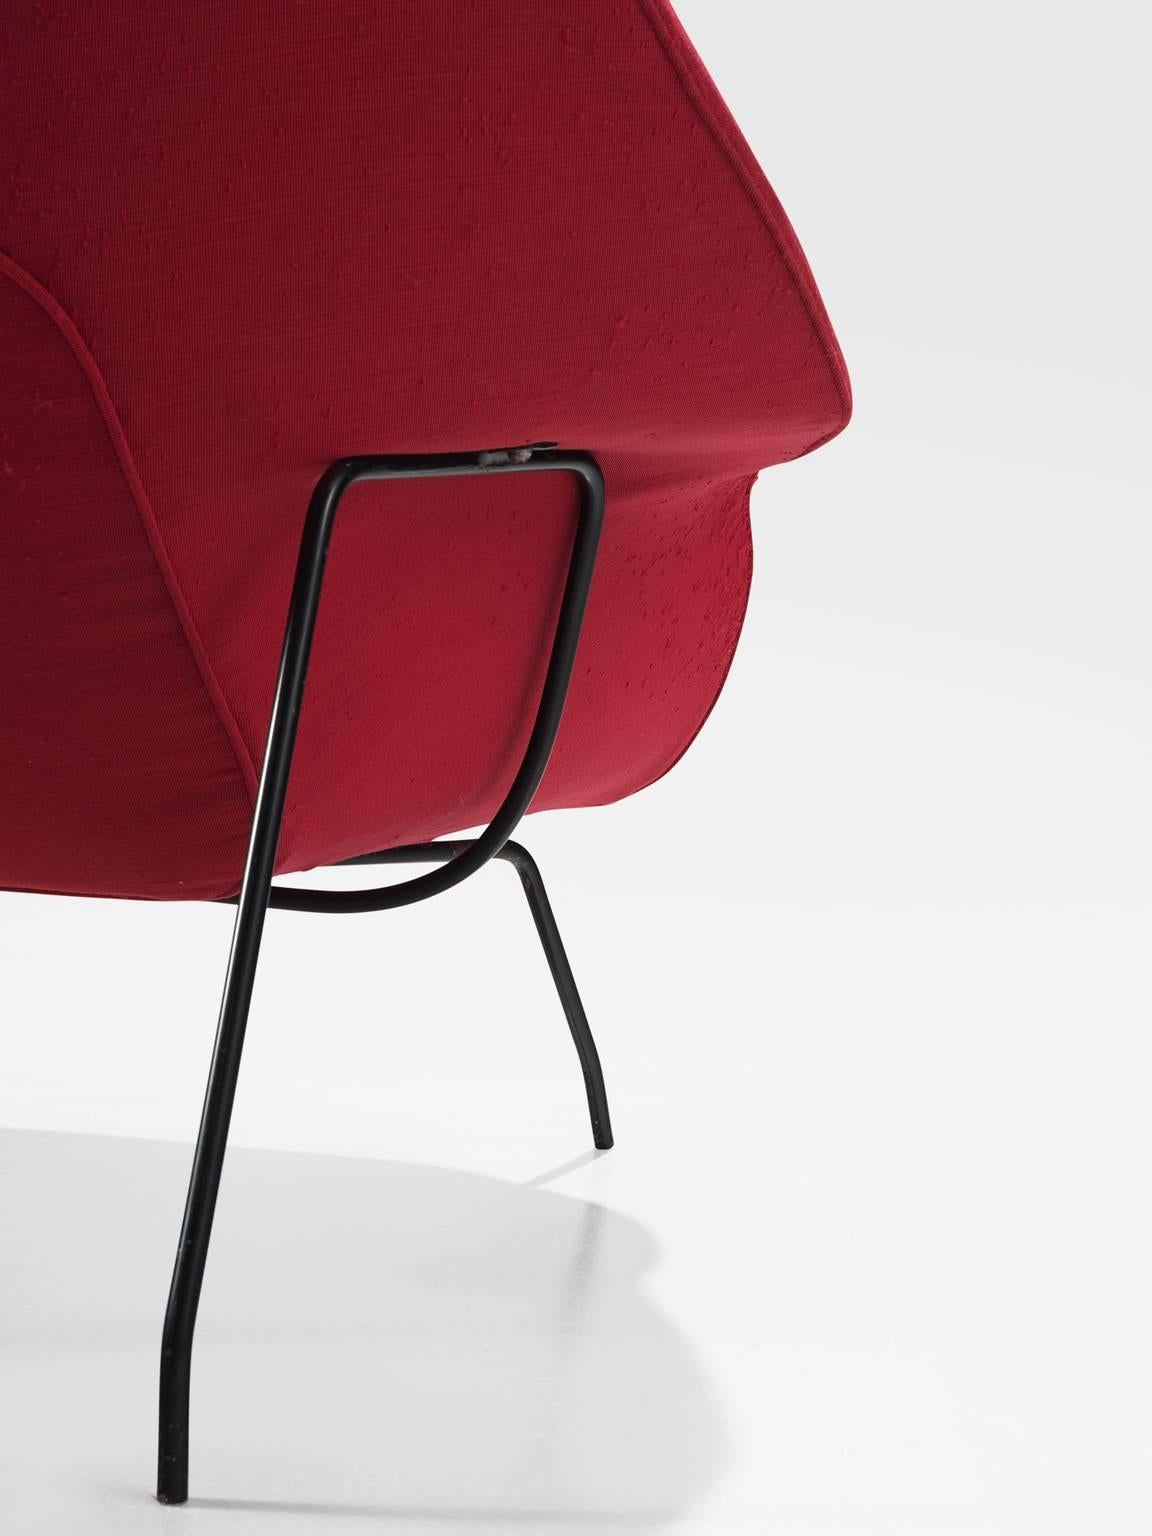 Metal Pair Of Womb Chairs By Eero Saarinen For Knoll For Sale